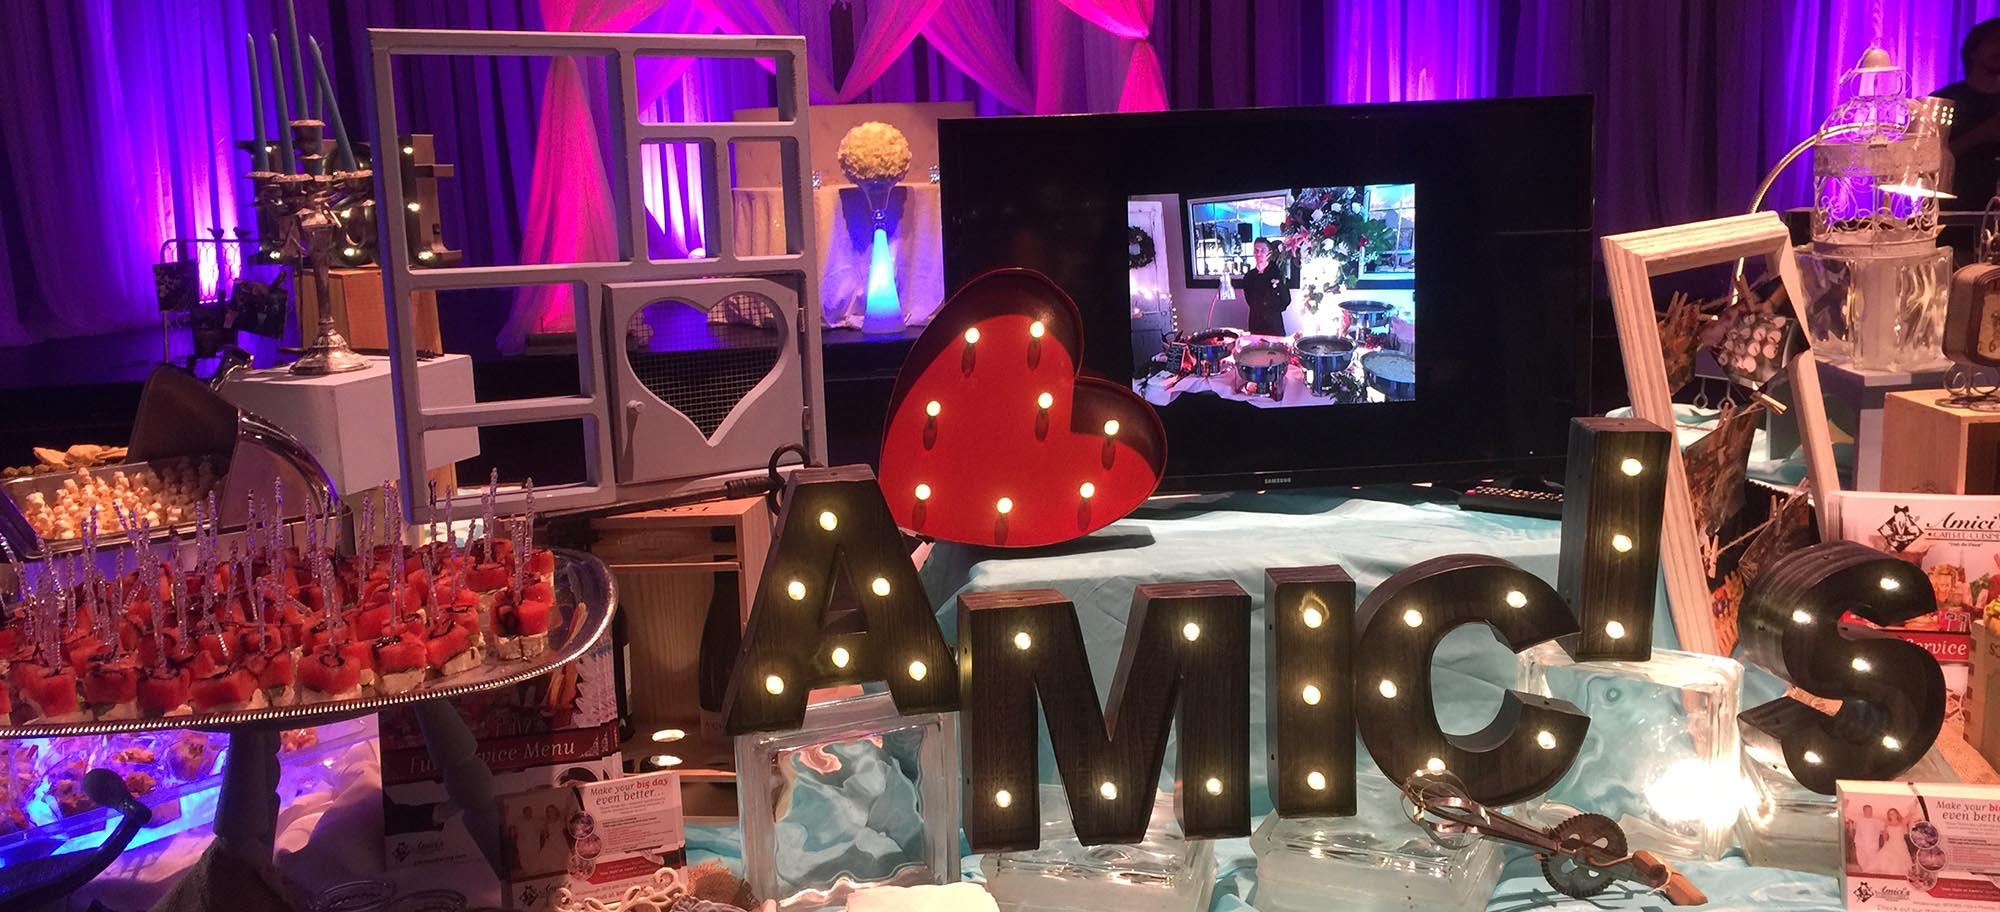 Amici's Sign with Lights